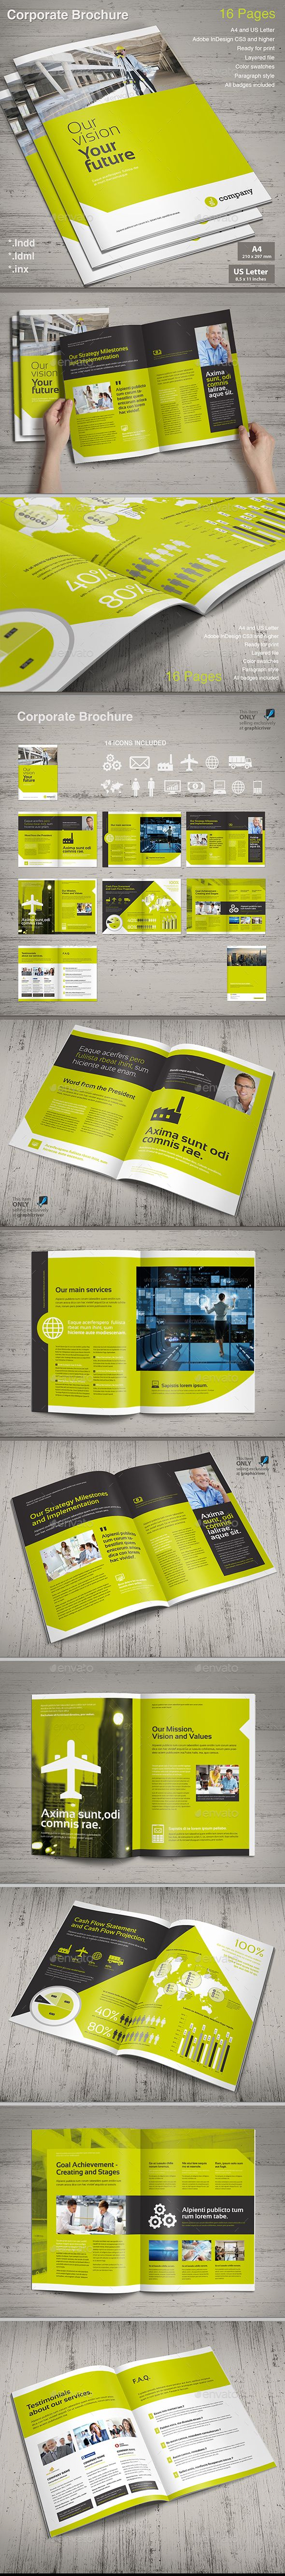 Corporate Brochure Vol.3 | Folletos, Folleto corporativo y Diseño ...